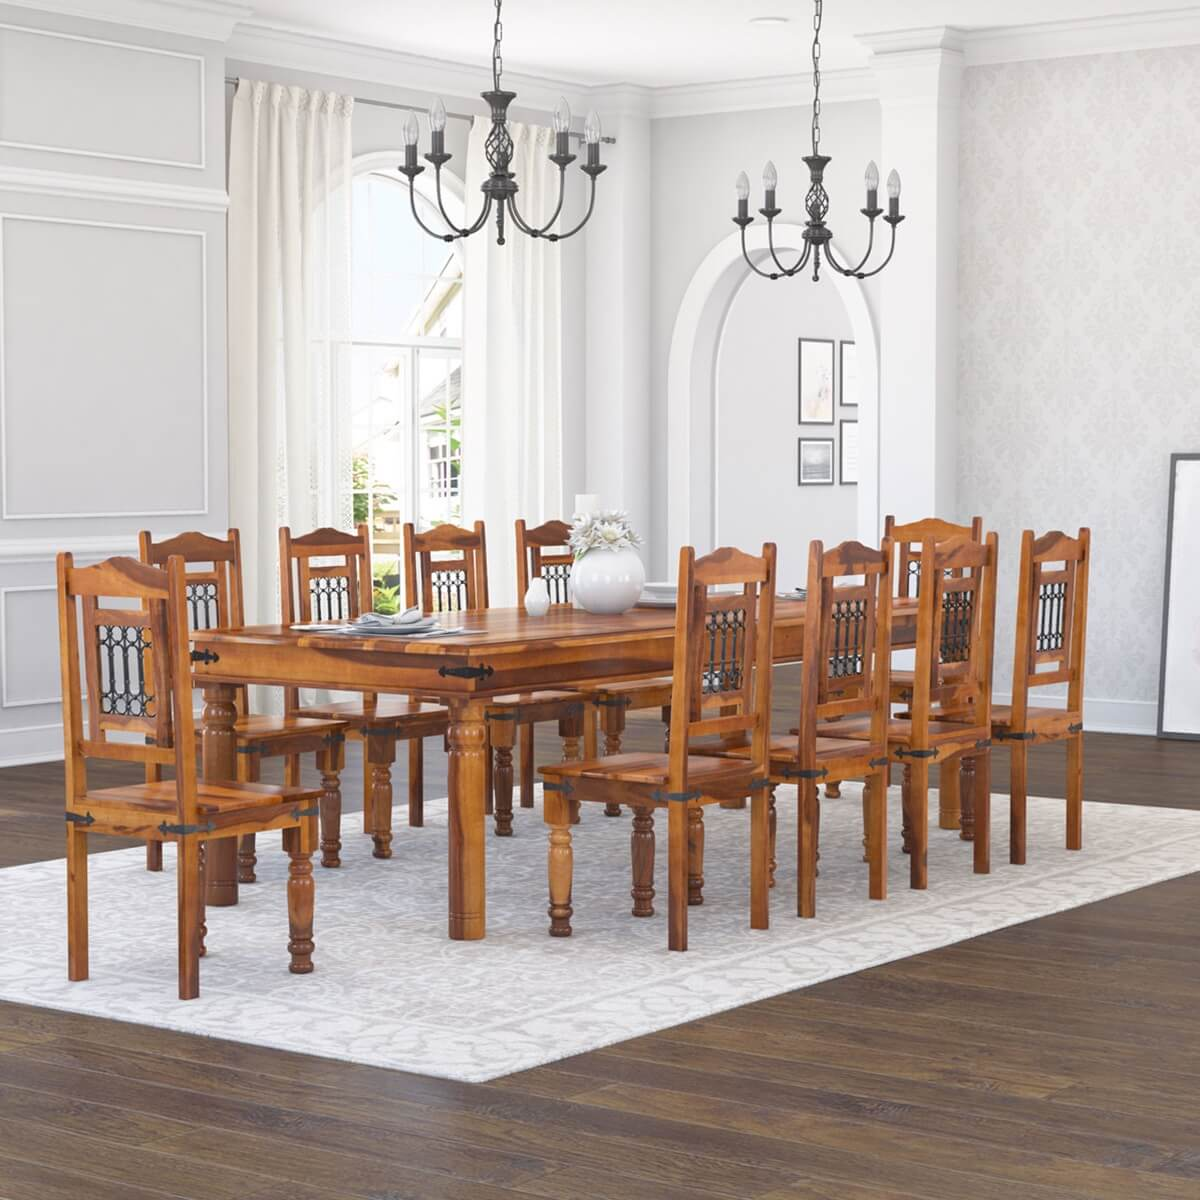 San francisco rustic furniture large dining table with 10 for Rustic dining room sets